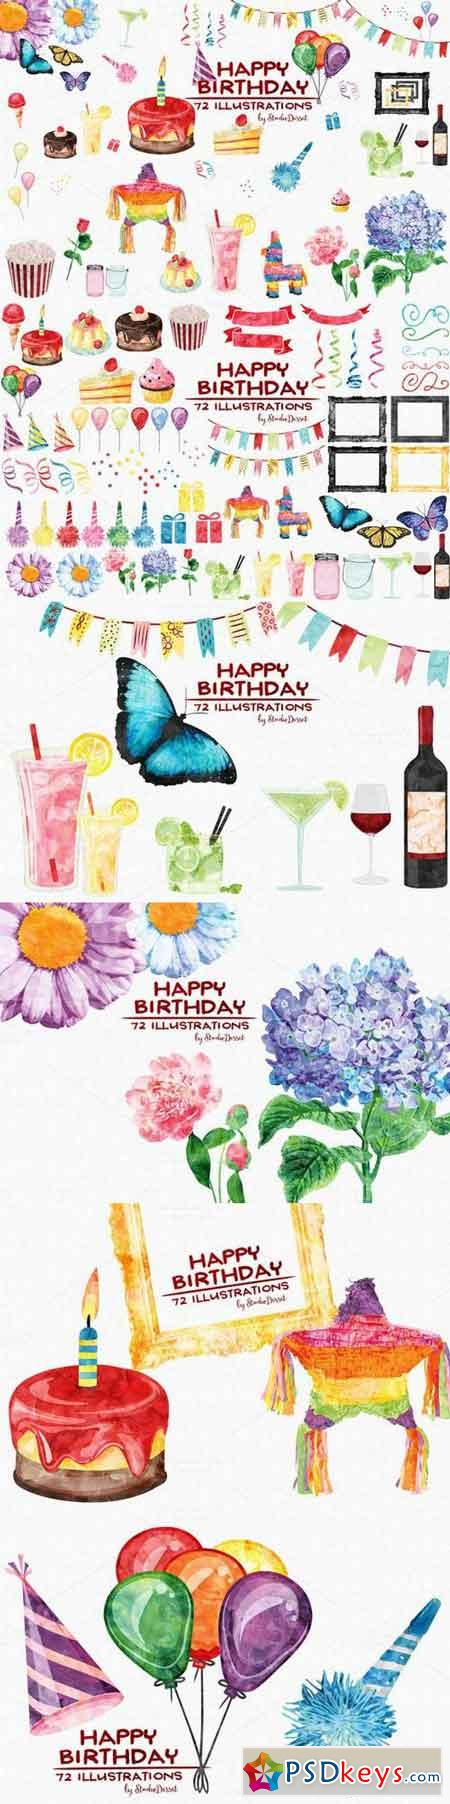 Birthday - Watercolor Cliparts 693862